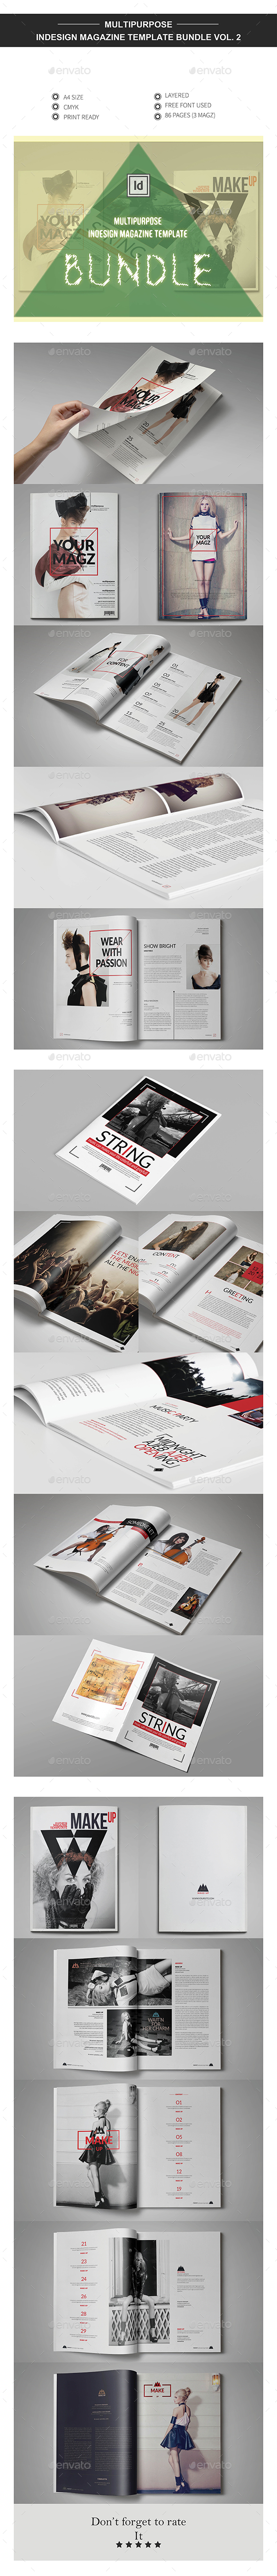 Multipurpose InDesign Magazine Template Bundle V.2 - Magazines Print Templates